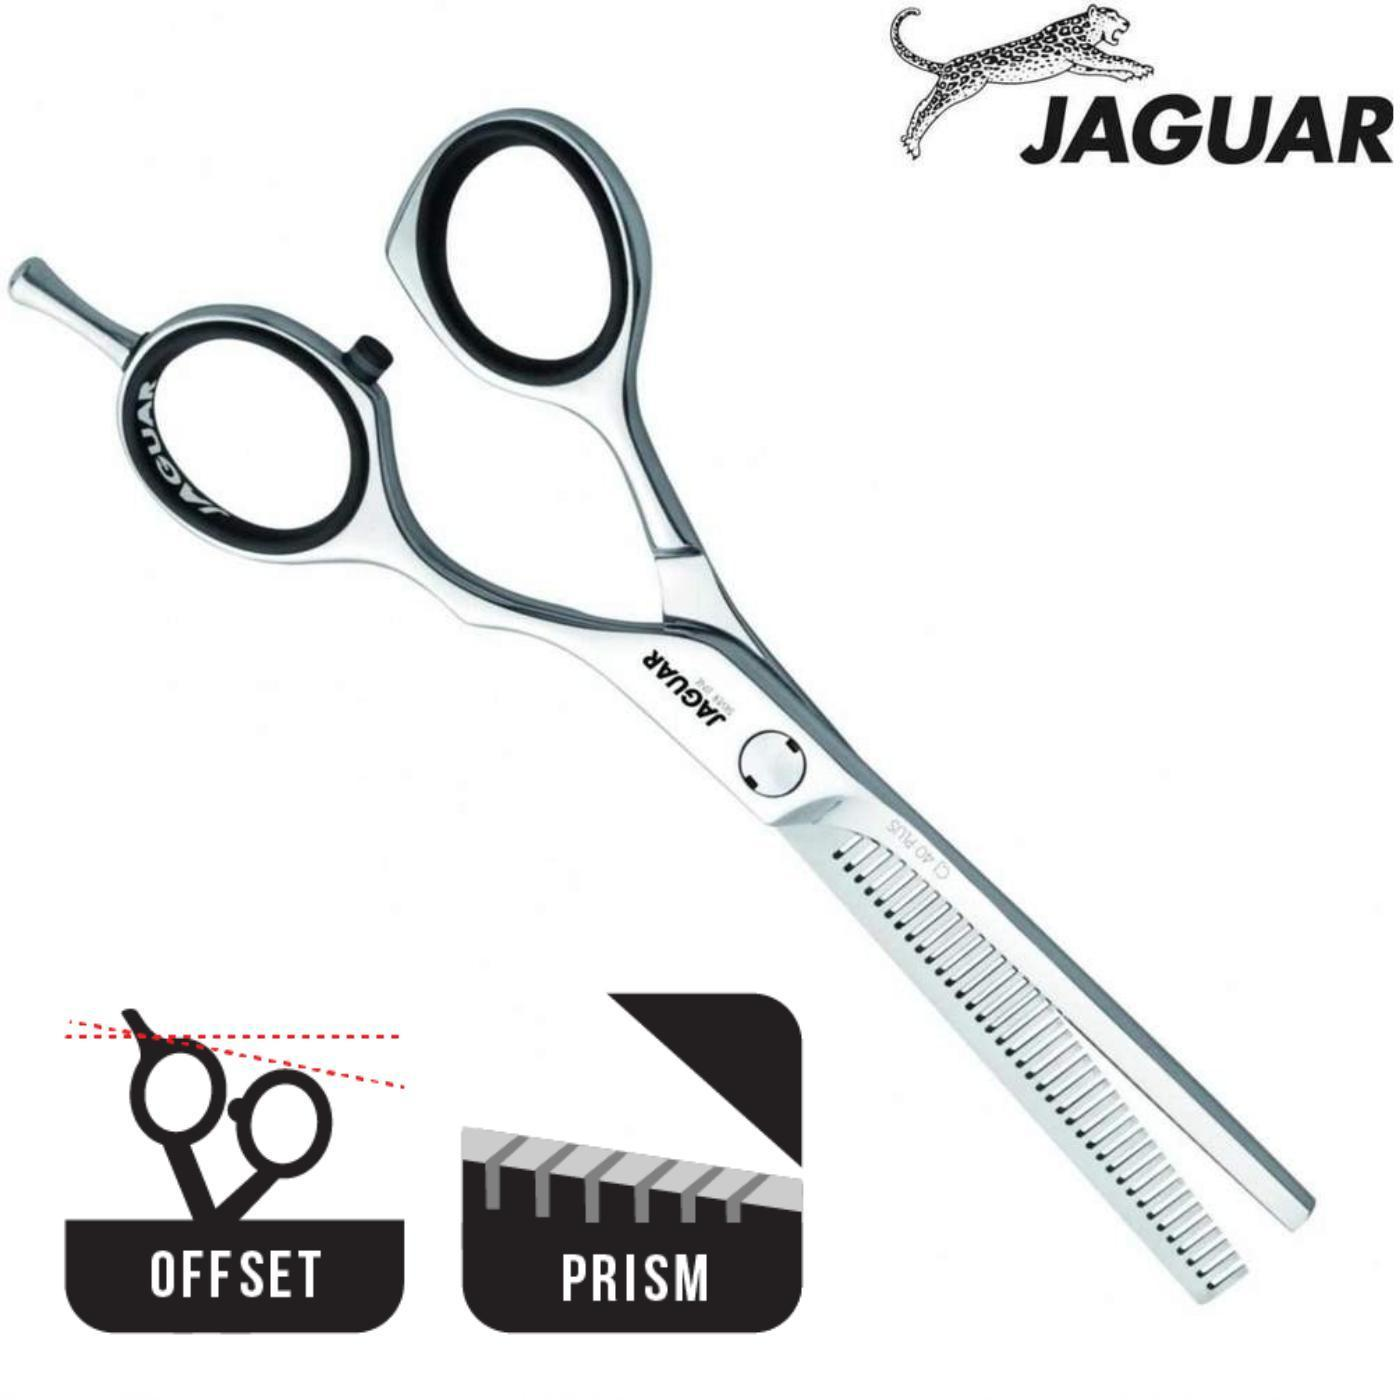 Jaguar Silver Line CJ4 Offset Hair Thinning Scissors - Japan Scissors